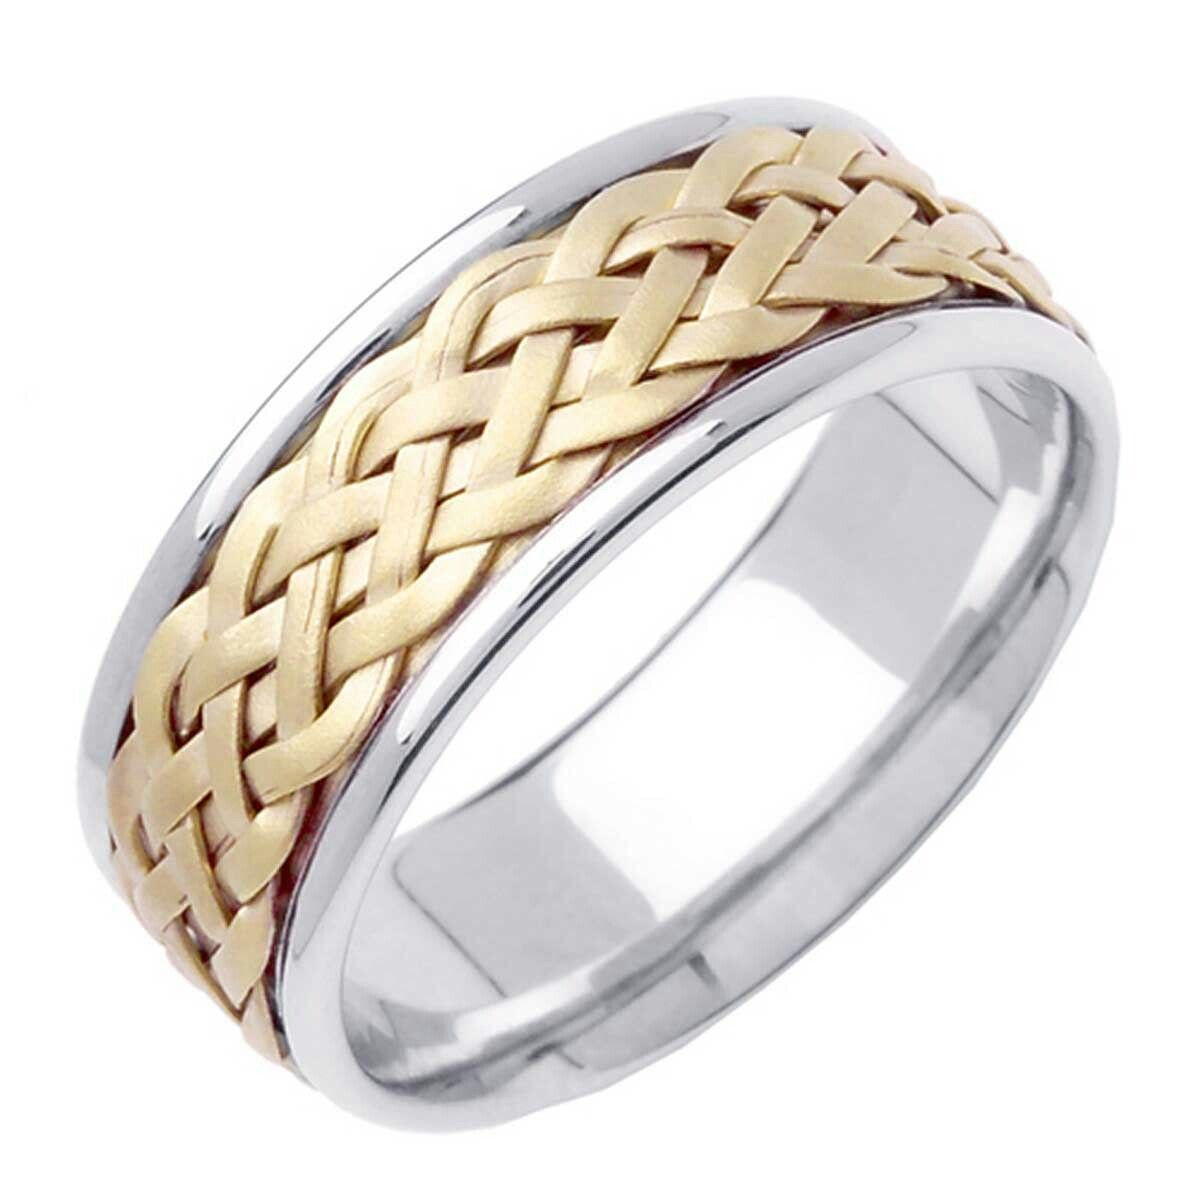 Irish Men S Ring Mens Gold Wedding Band Braided Wedding Band Indian Wedding Rings